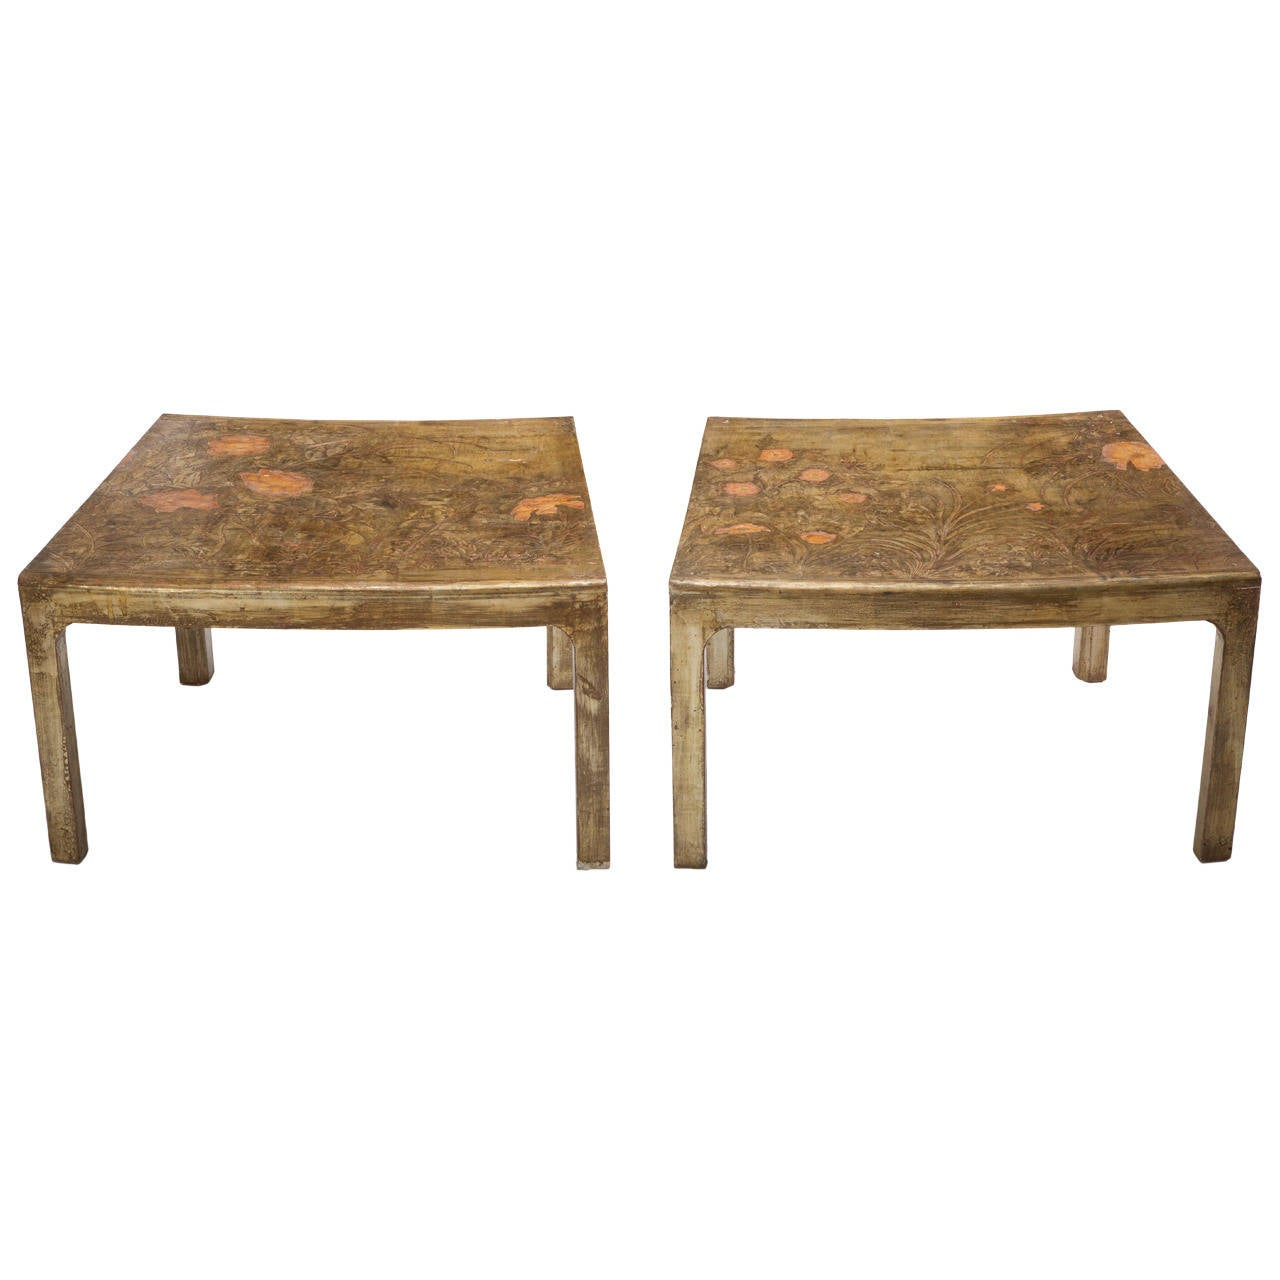 Pair of Max Kuehne Side Tables